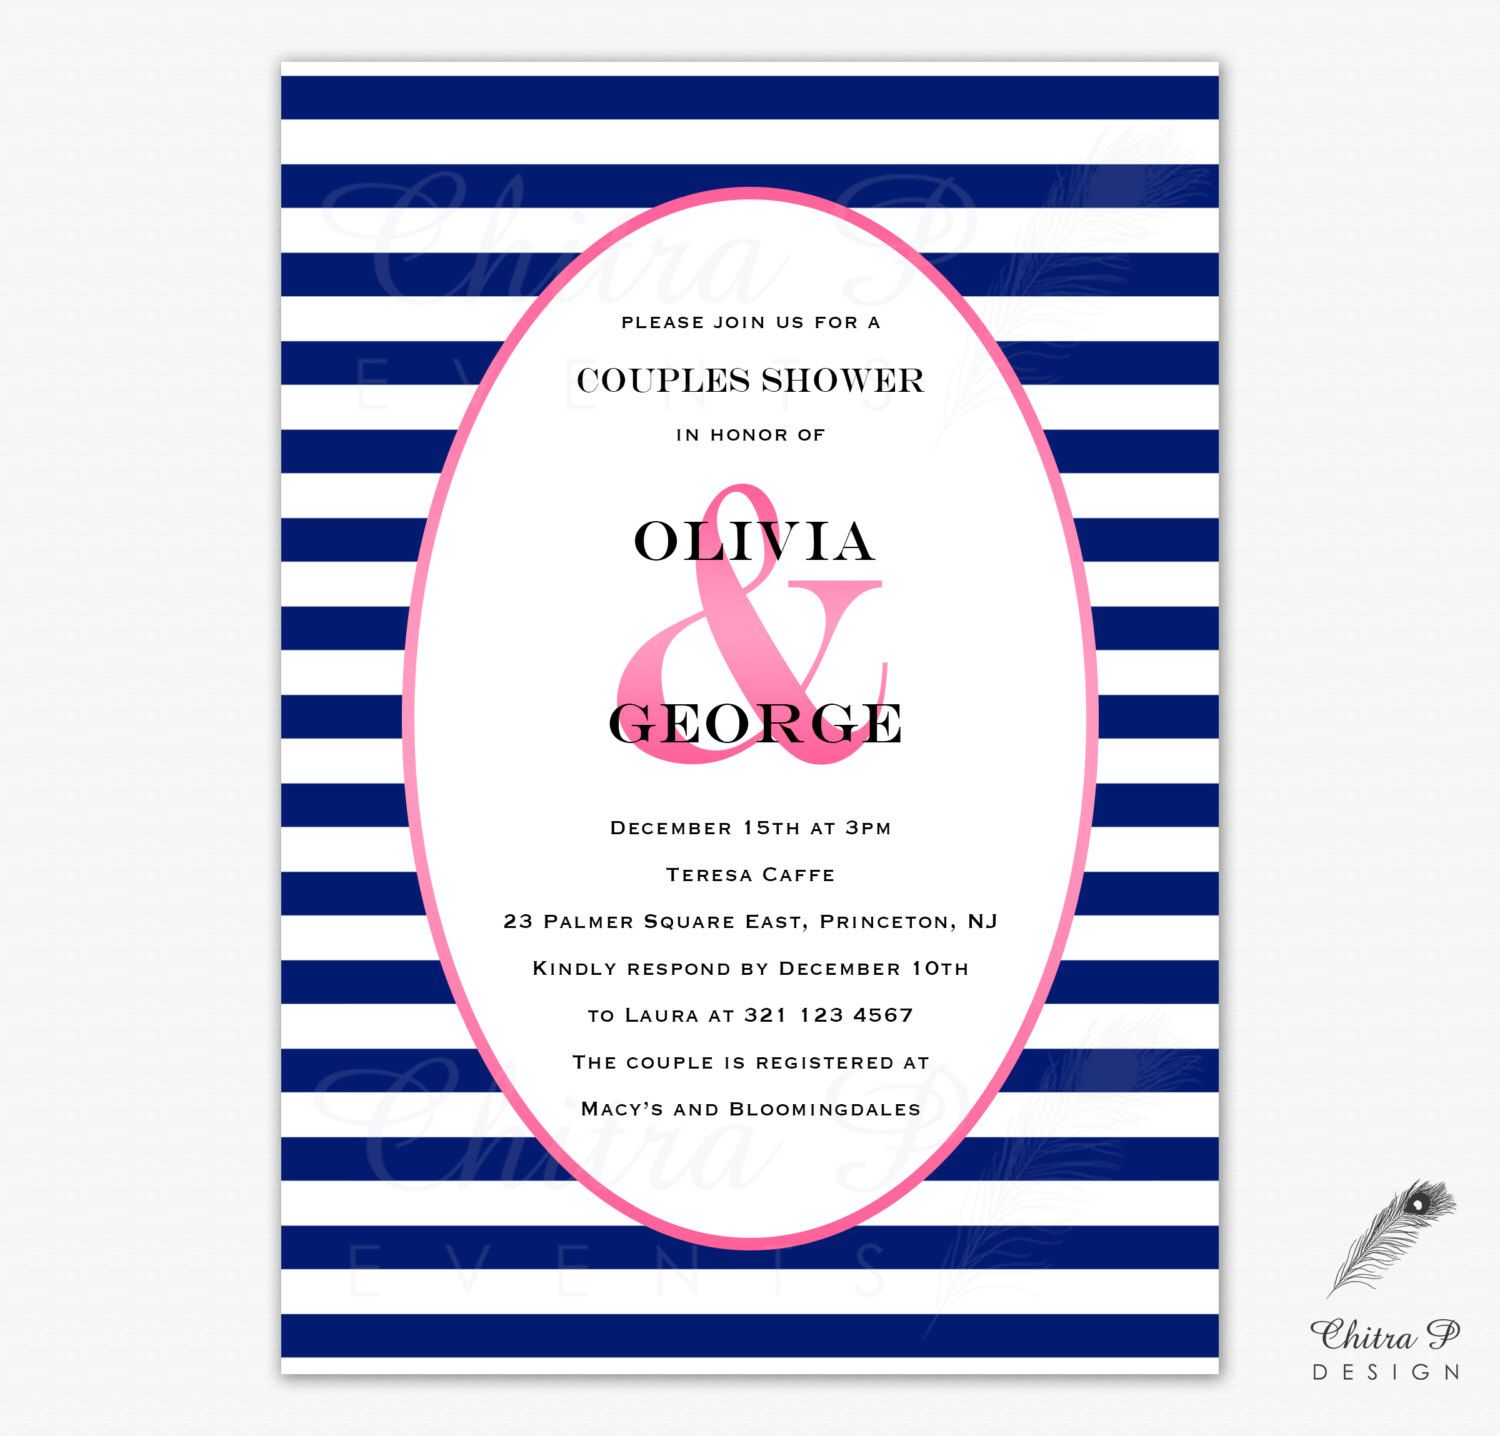 Pink & Navy Couples Shower Invitation - Printed or Printable, Wedding Stripe Ampersand Engagement Gender Neutral Blue Bridal Nautical - #057 by chitrap on Etsy https://www.etsy.com/listing/195304412/pink-navy-couples-shower-invitation